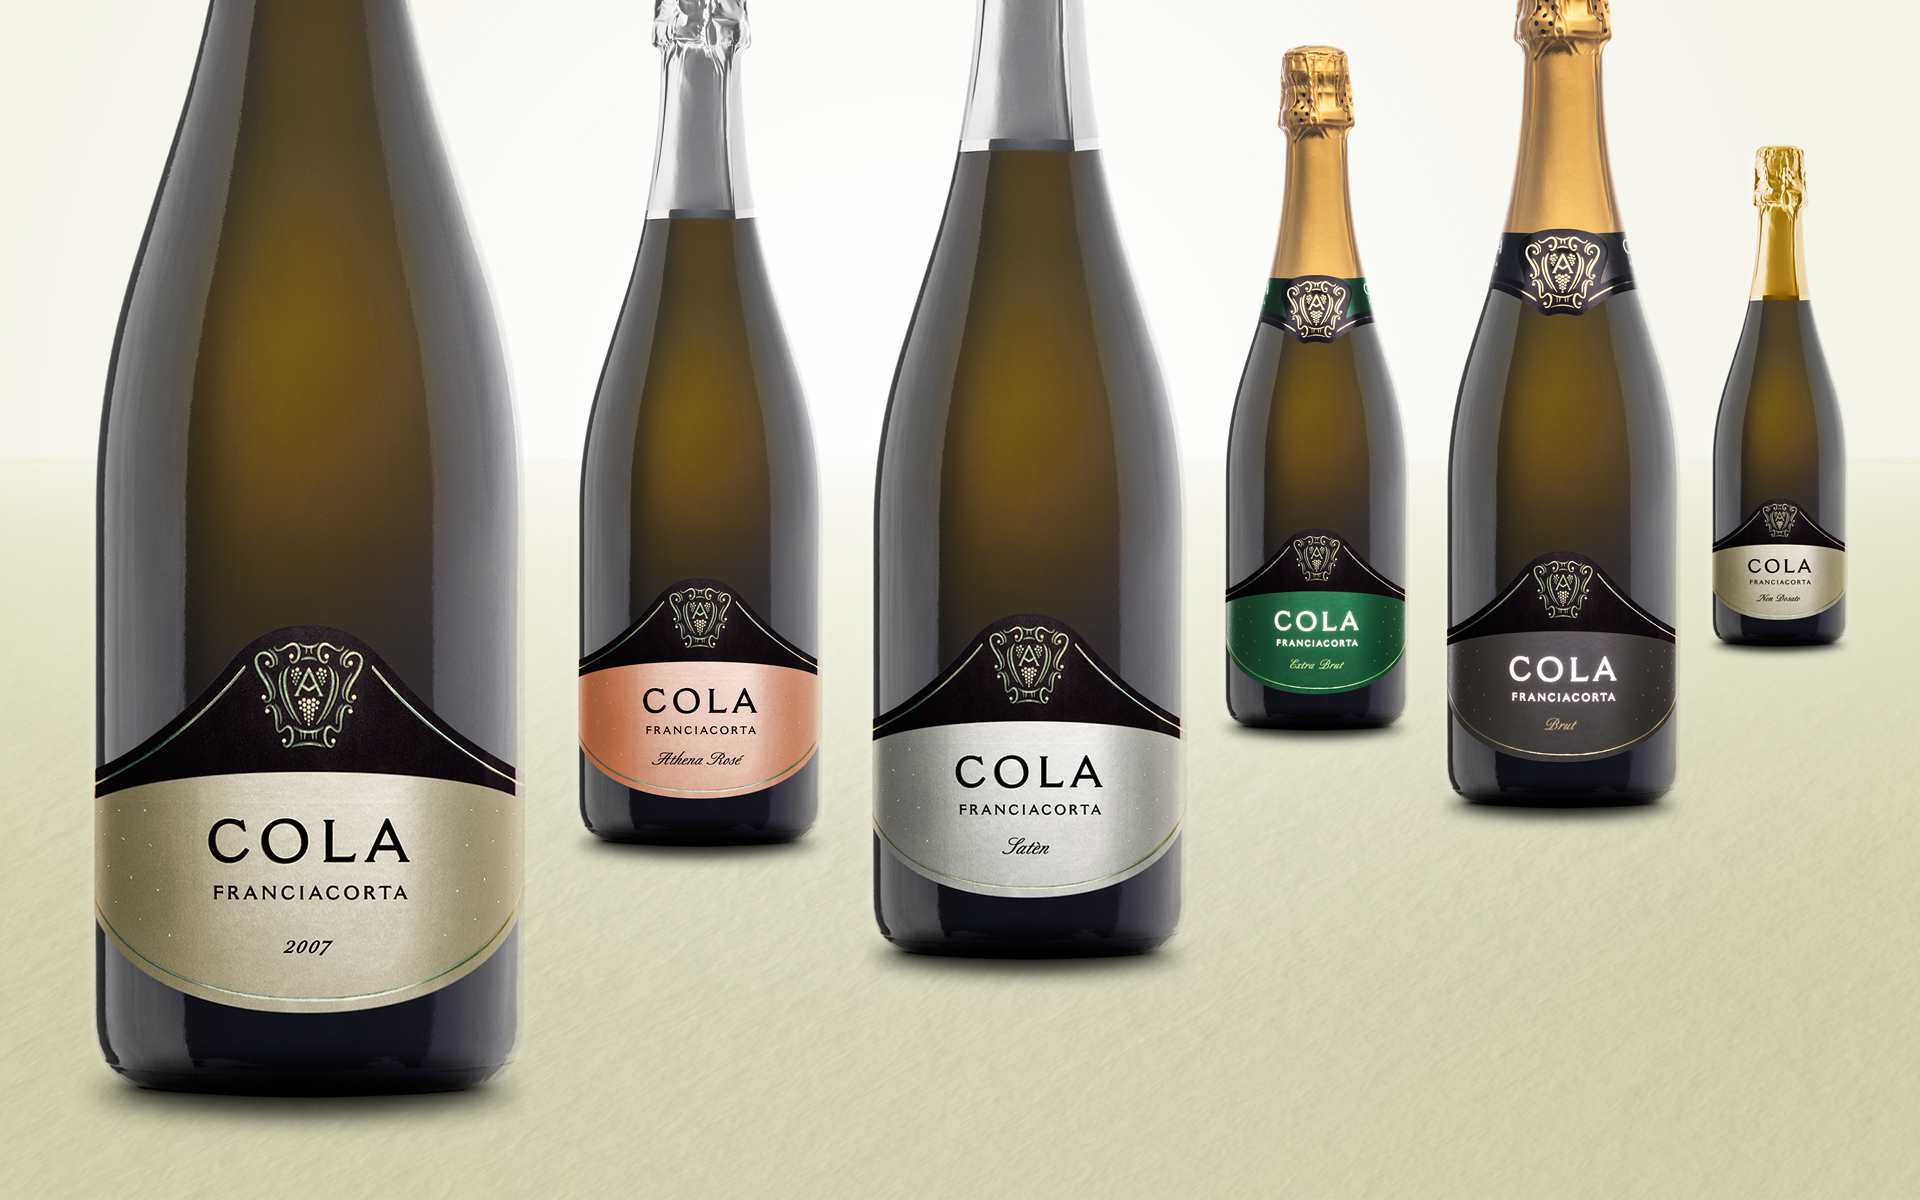 Family passion, essence of Franciacorta zone